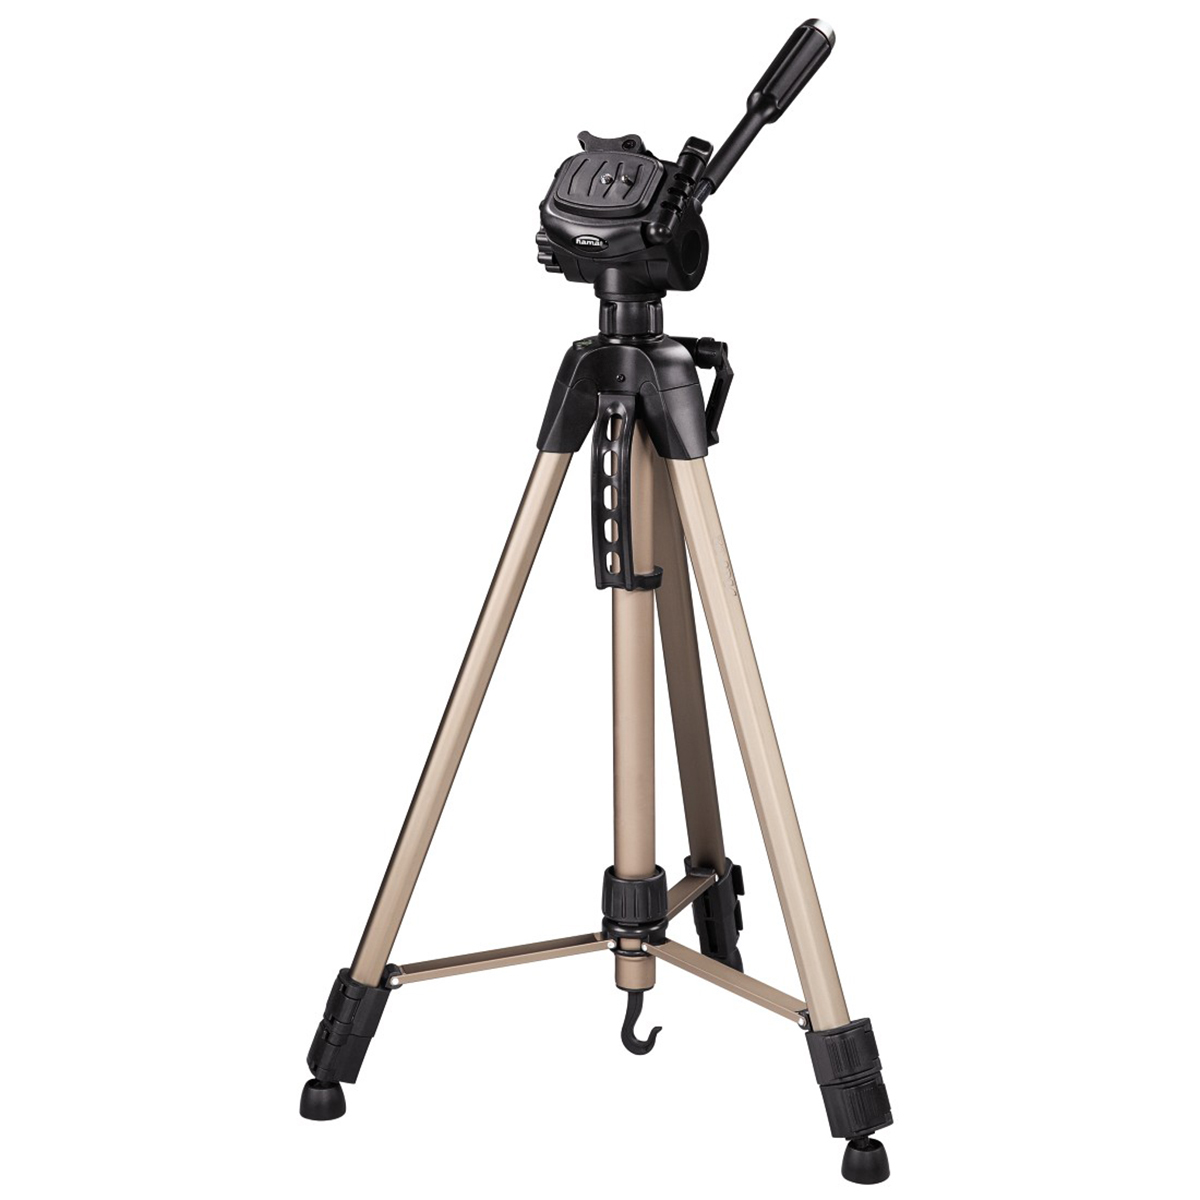 hama 3-way tripod 00004162 - MW01